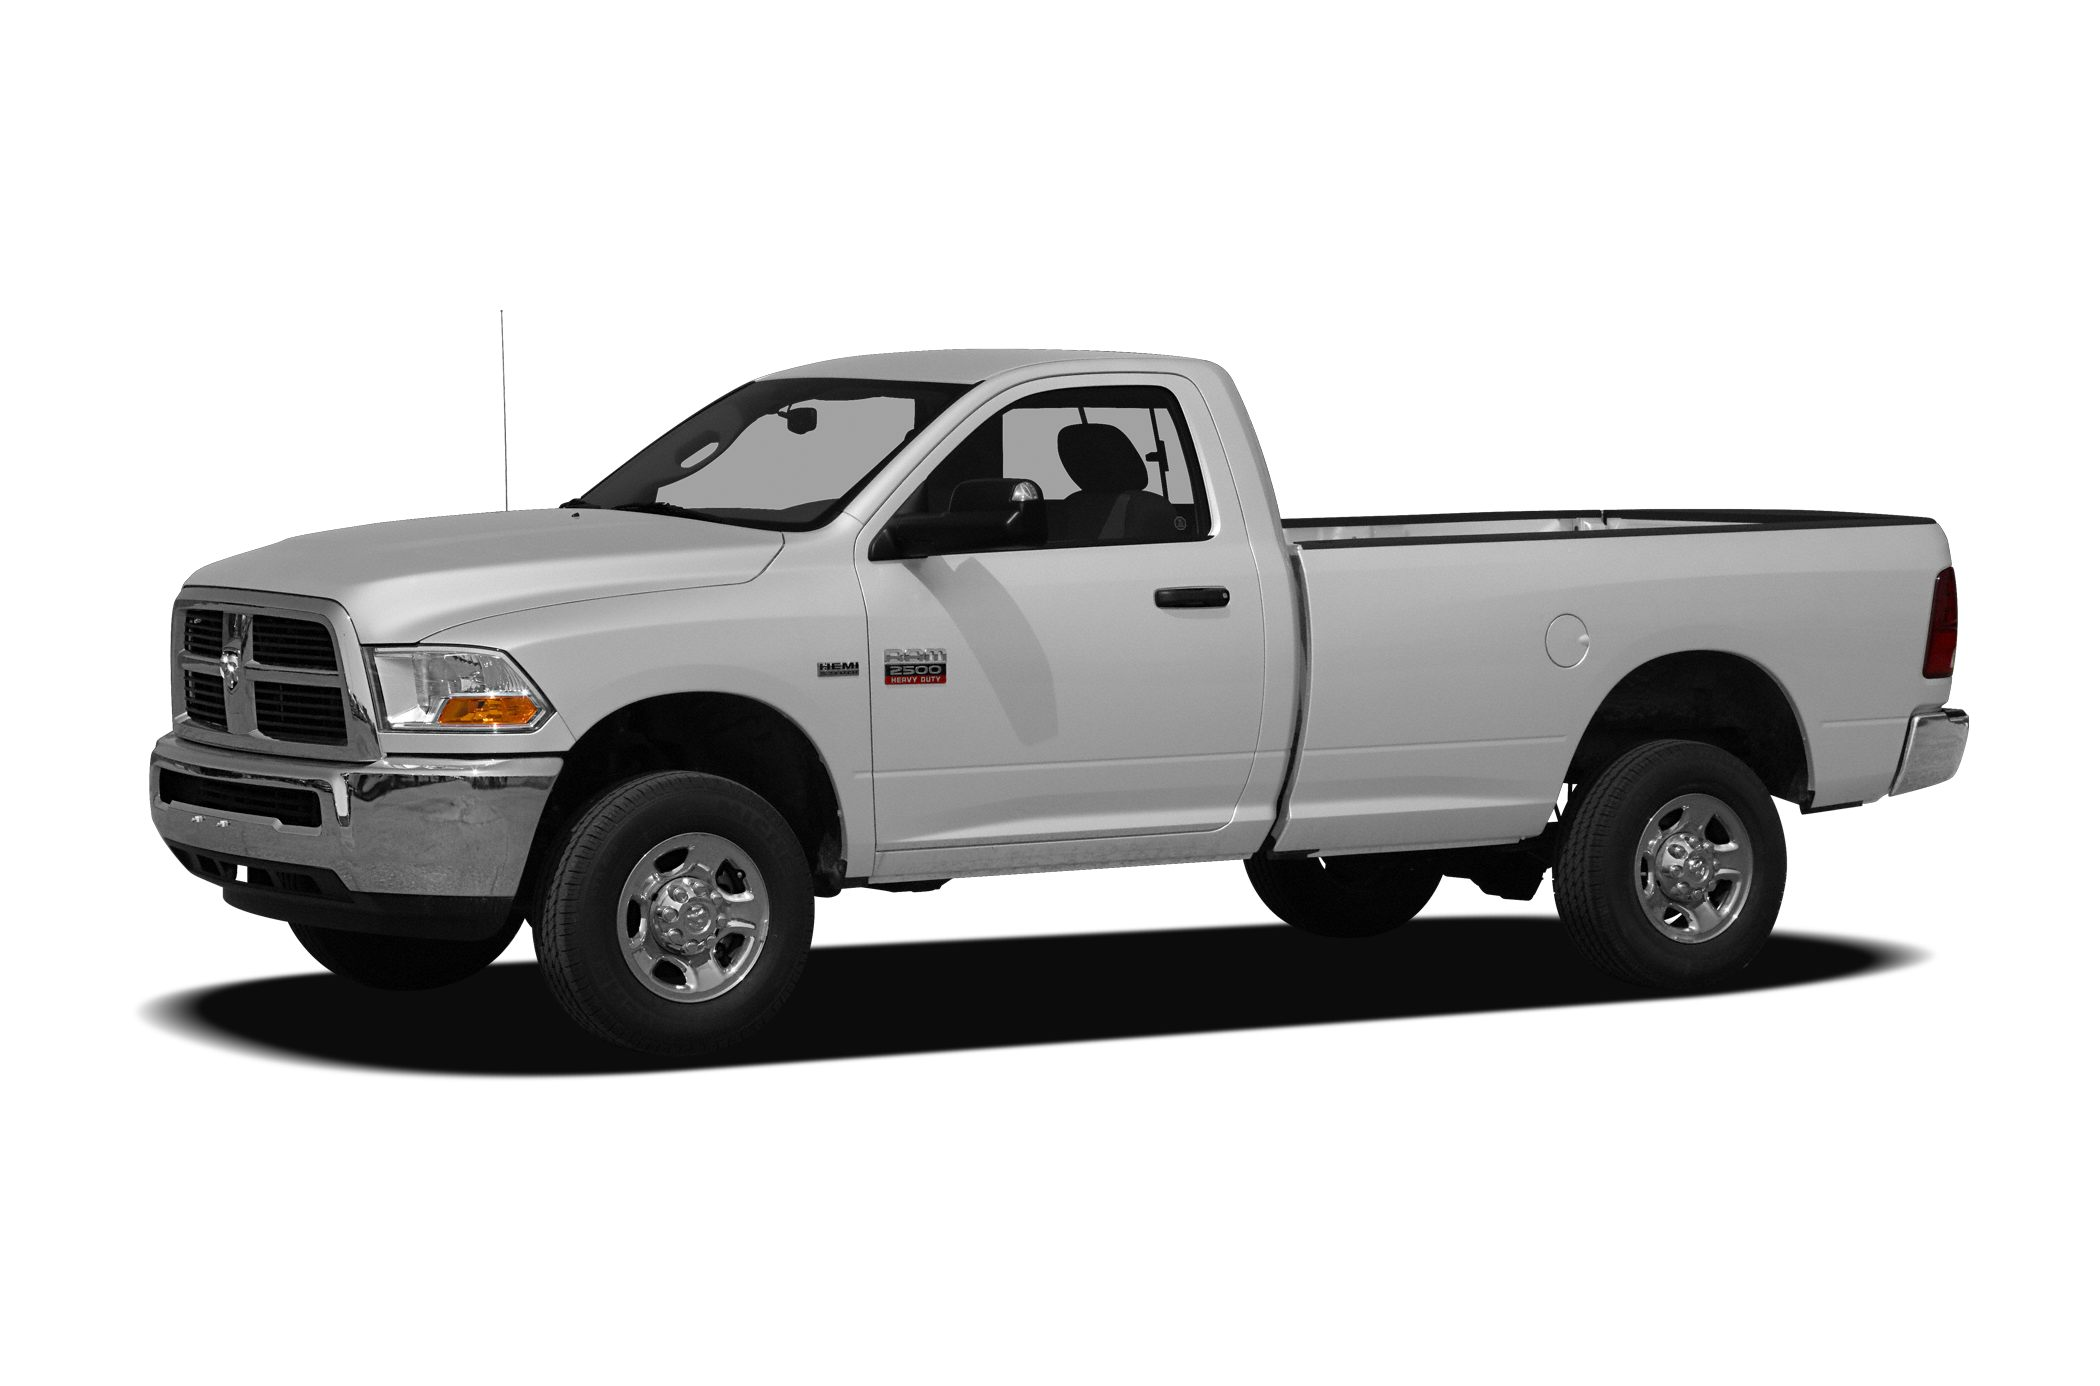 2011 Dodge Ram 2500 SLT Crew Cab Pickup for sale in Norwich for $26,994 with 117,243 miles.